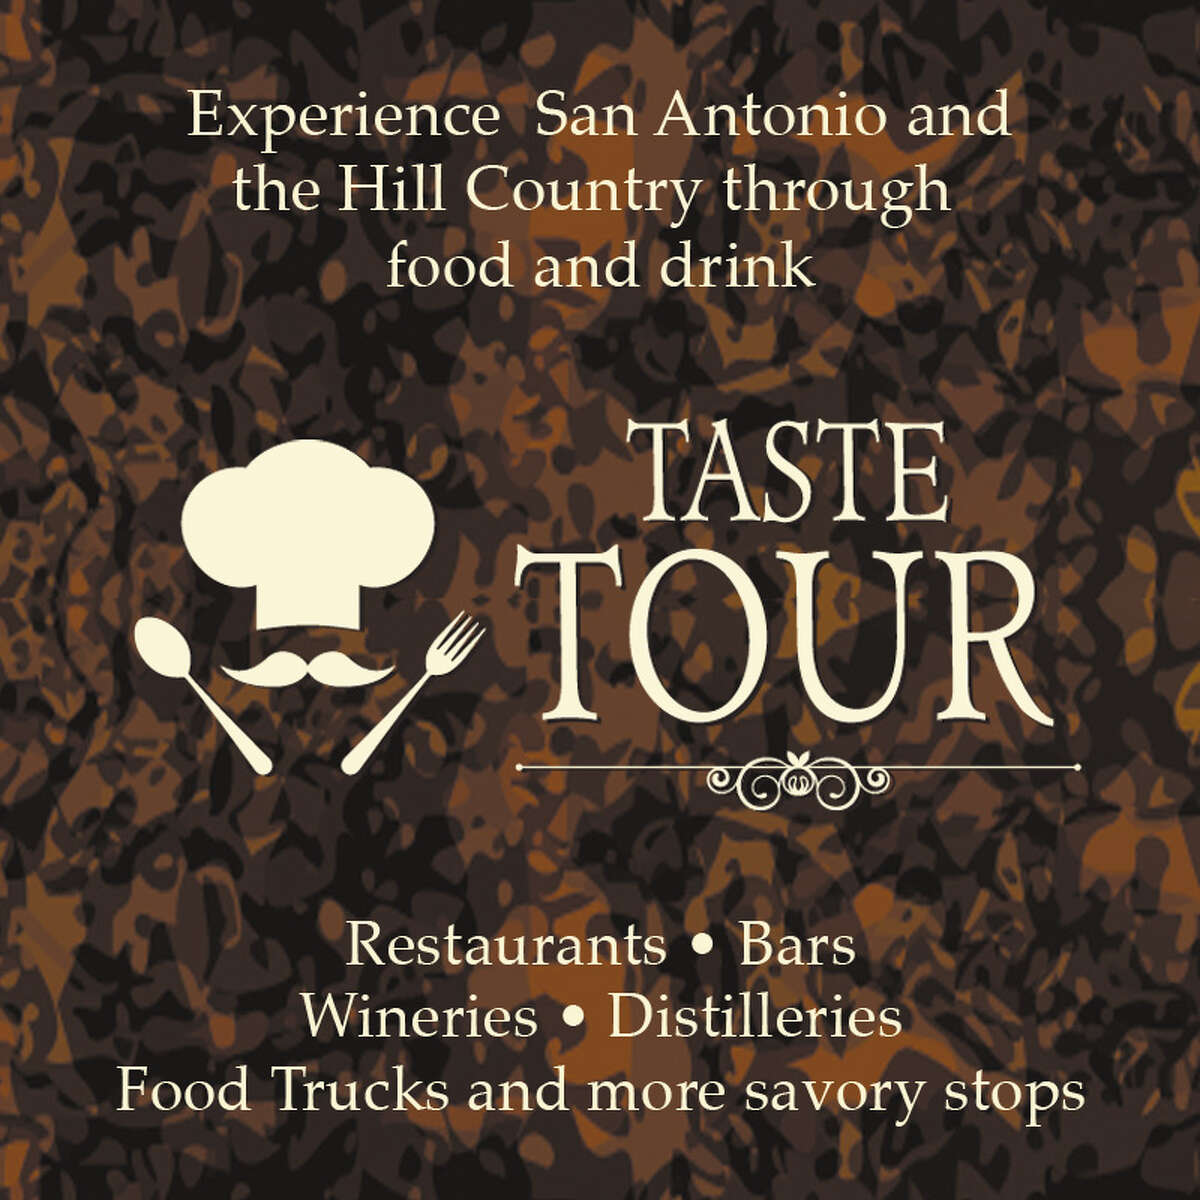 Experience San Antonio and the Hill Country through food and drink.